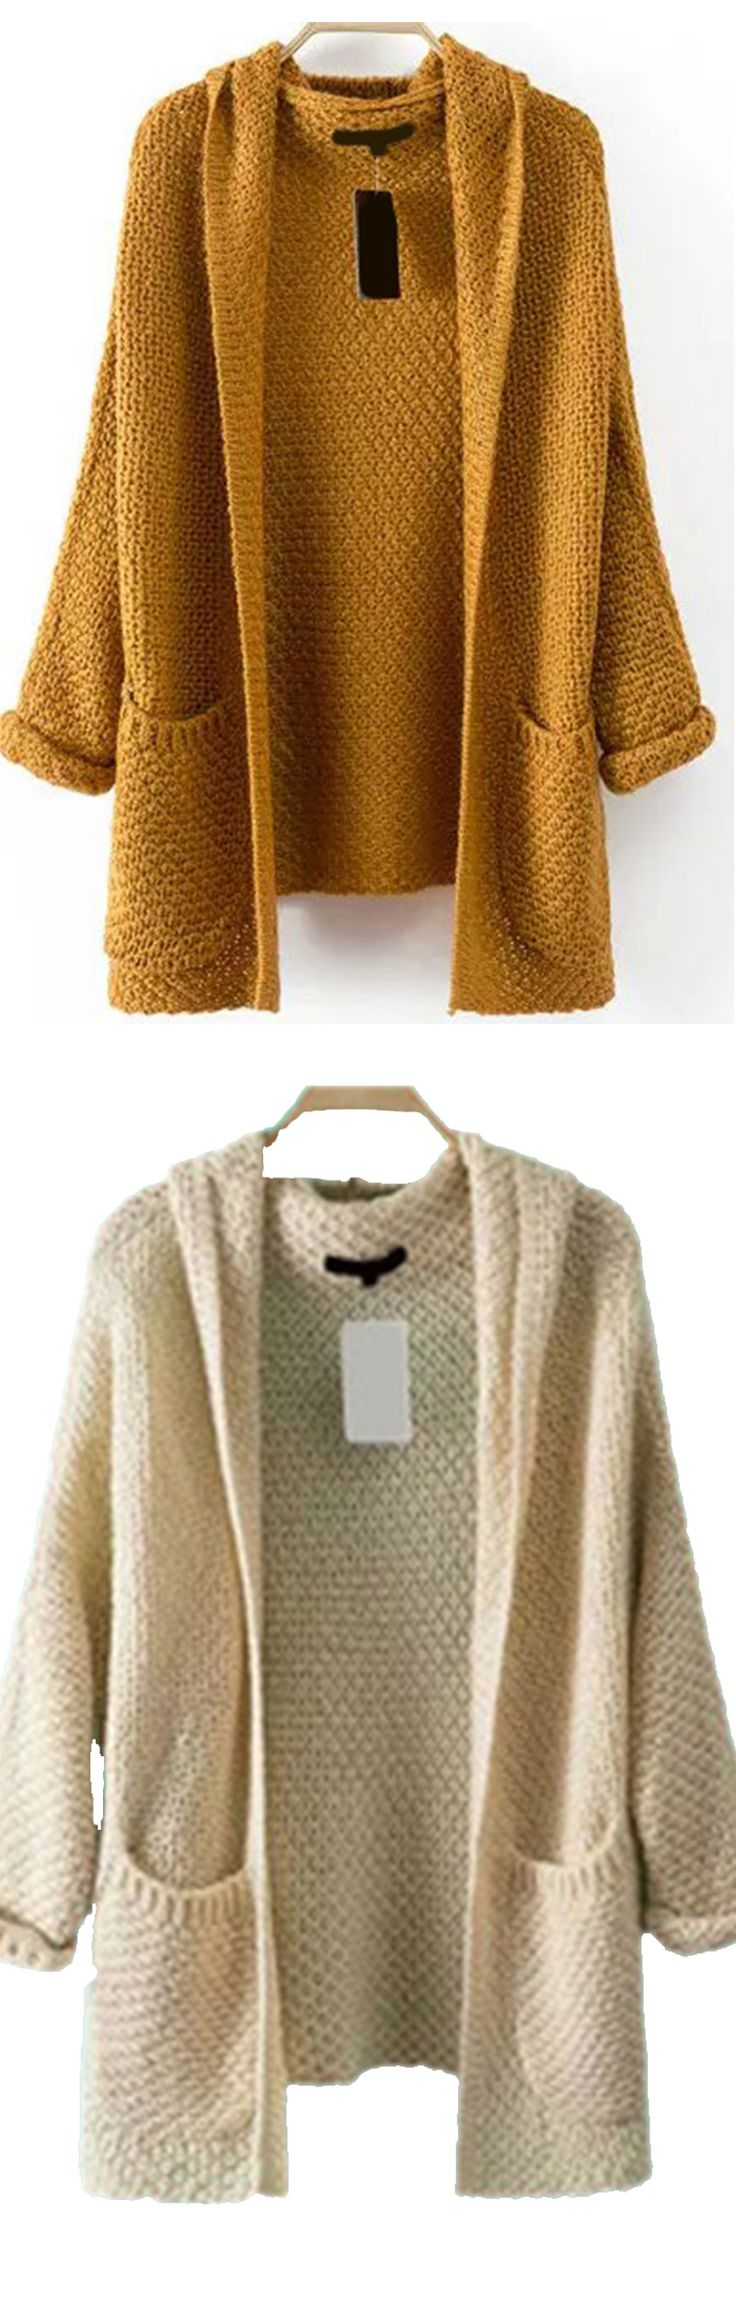 Loose chunky knit khaki pocket sweater cardigan at romwe.com. Click for  shopping with up to 60% off! 7cddb8875